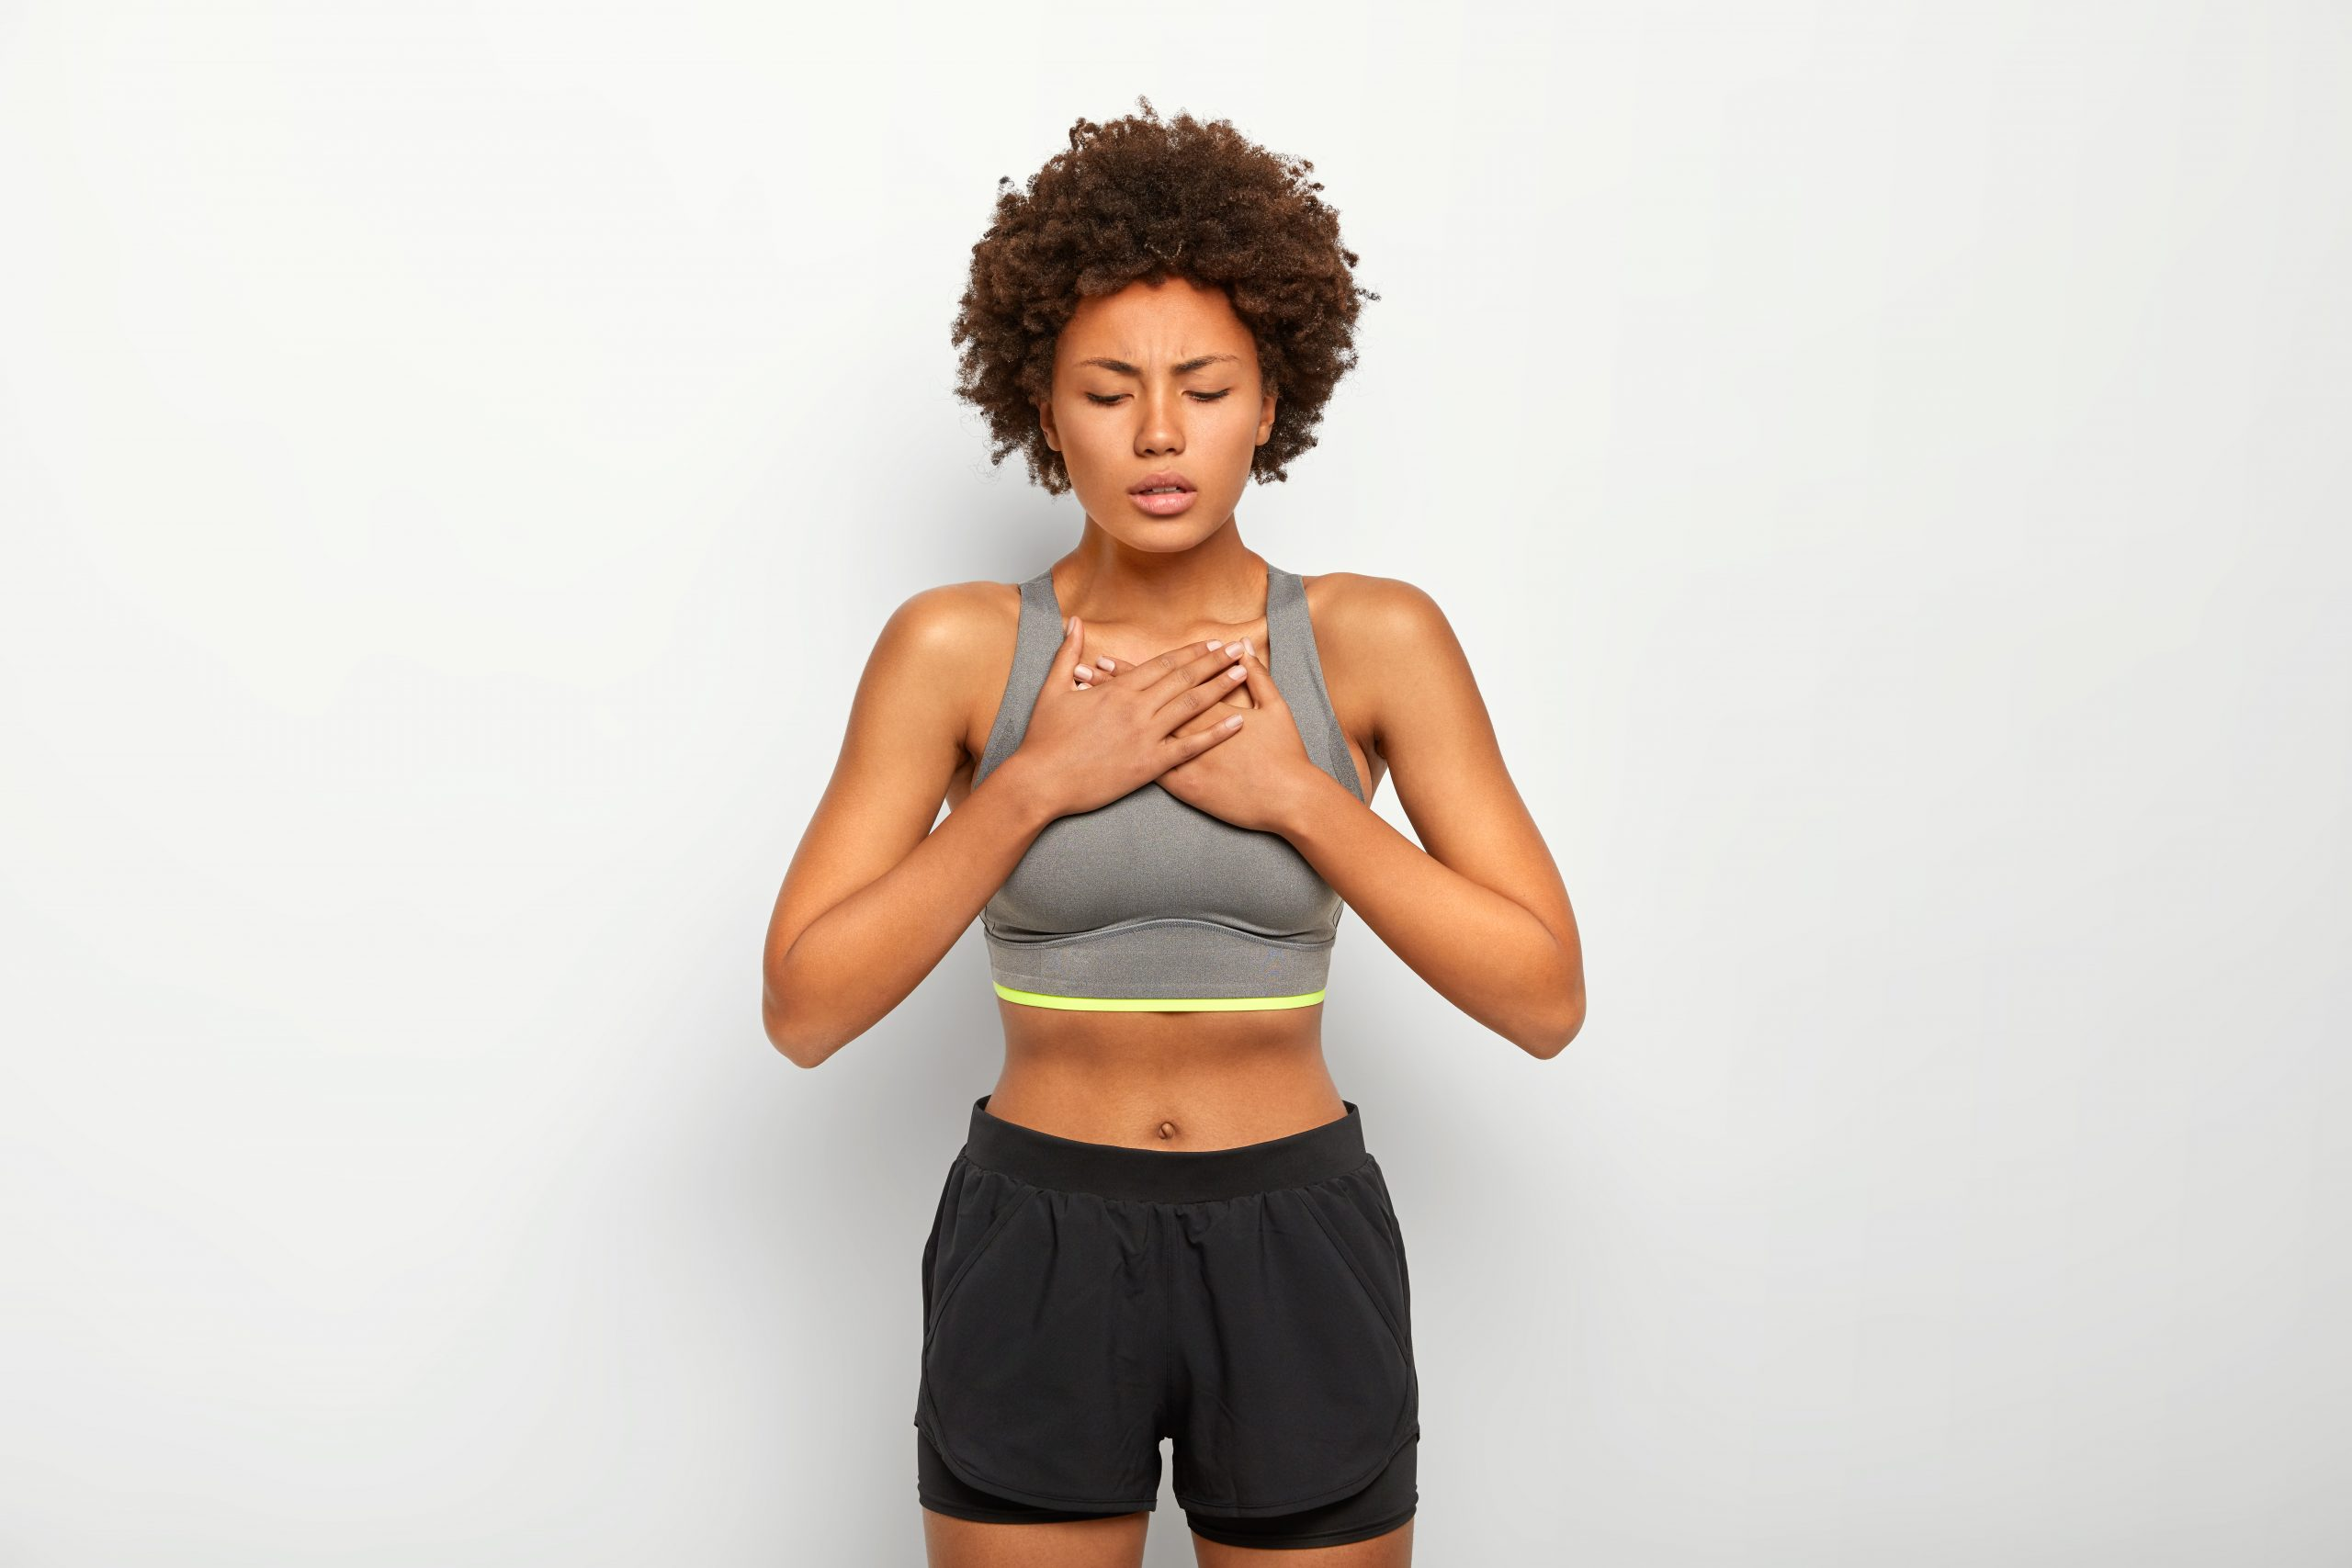 Horizontal shot of dissatisfied Afro American woman suffers from asthmatic fit, breathers deeply, has shortness of breath or dyspnoea, wears grey top and shorts, isolated over white background